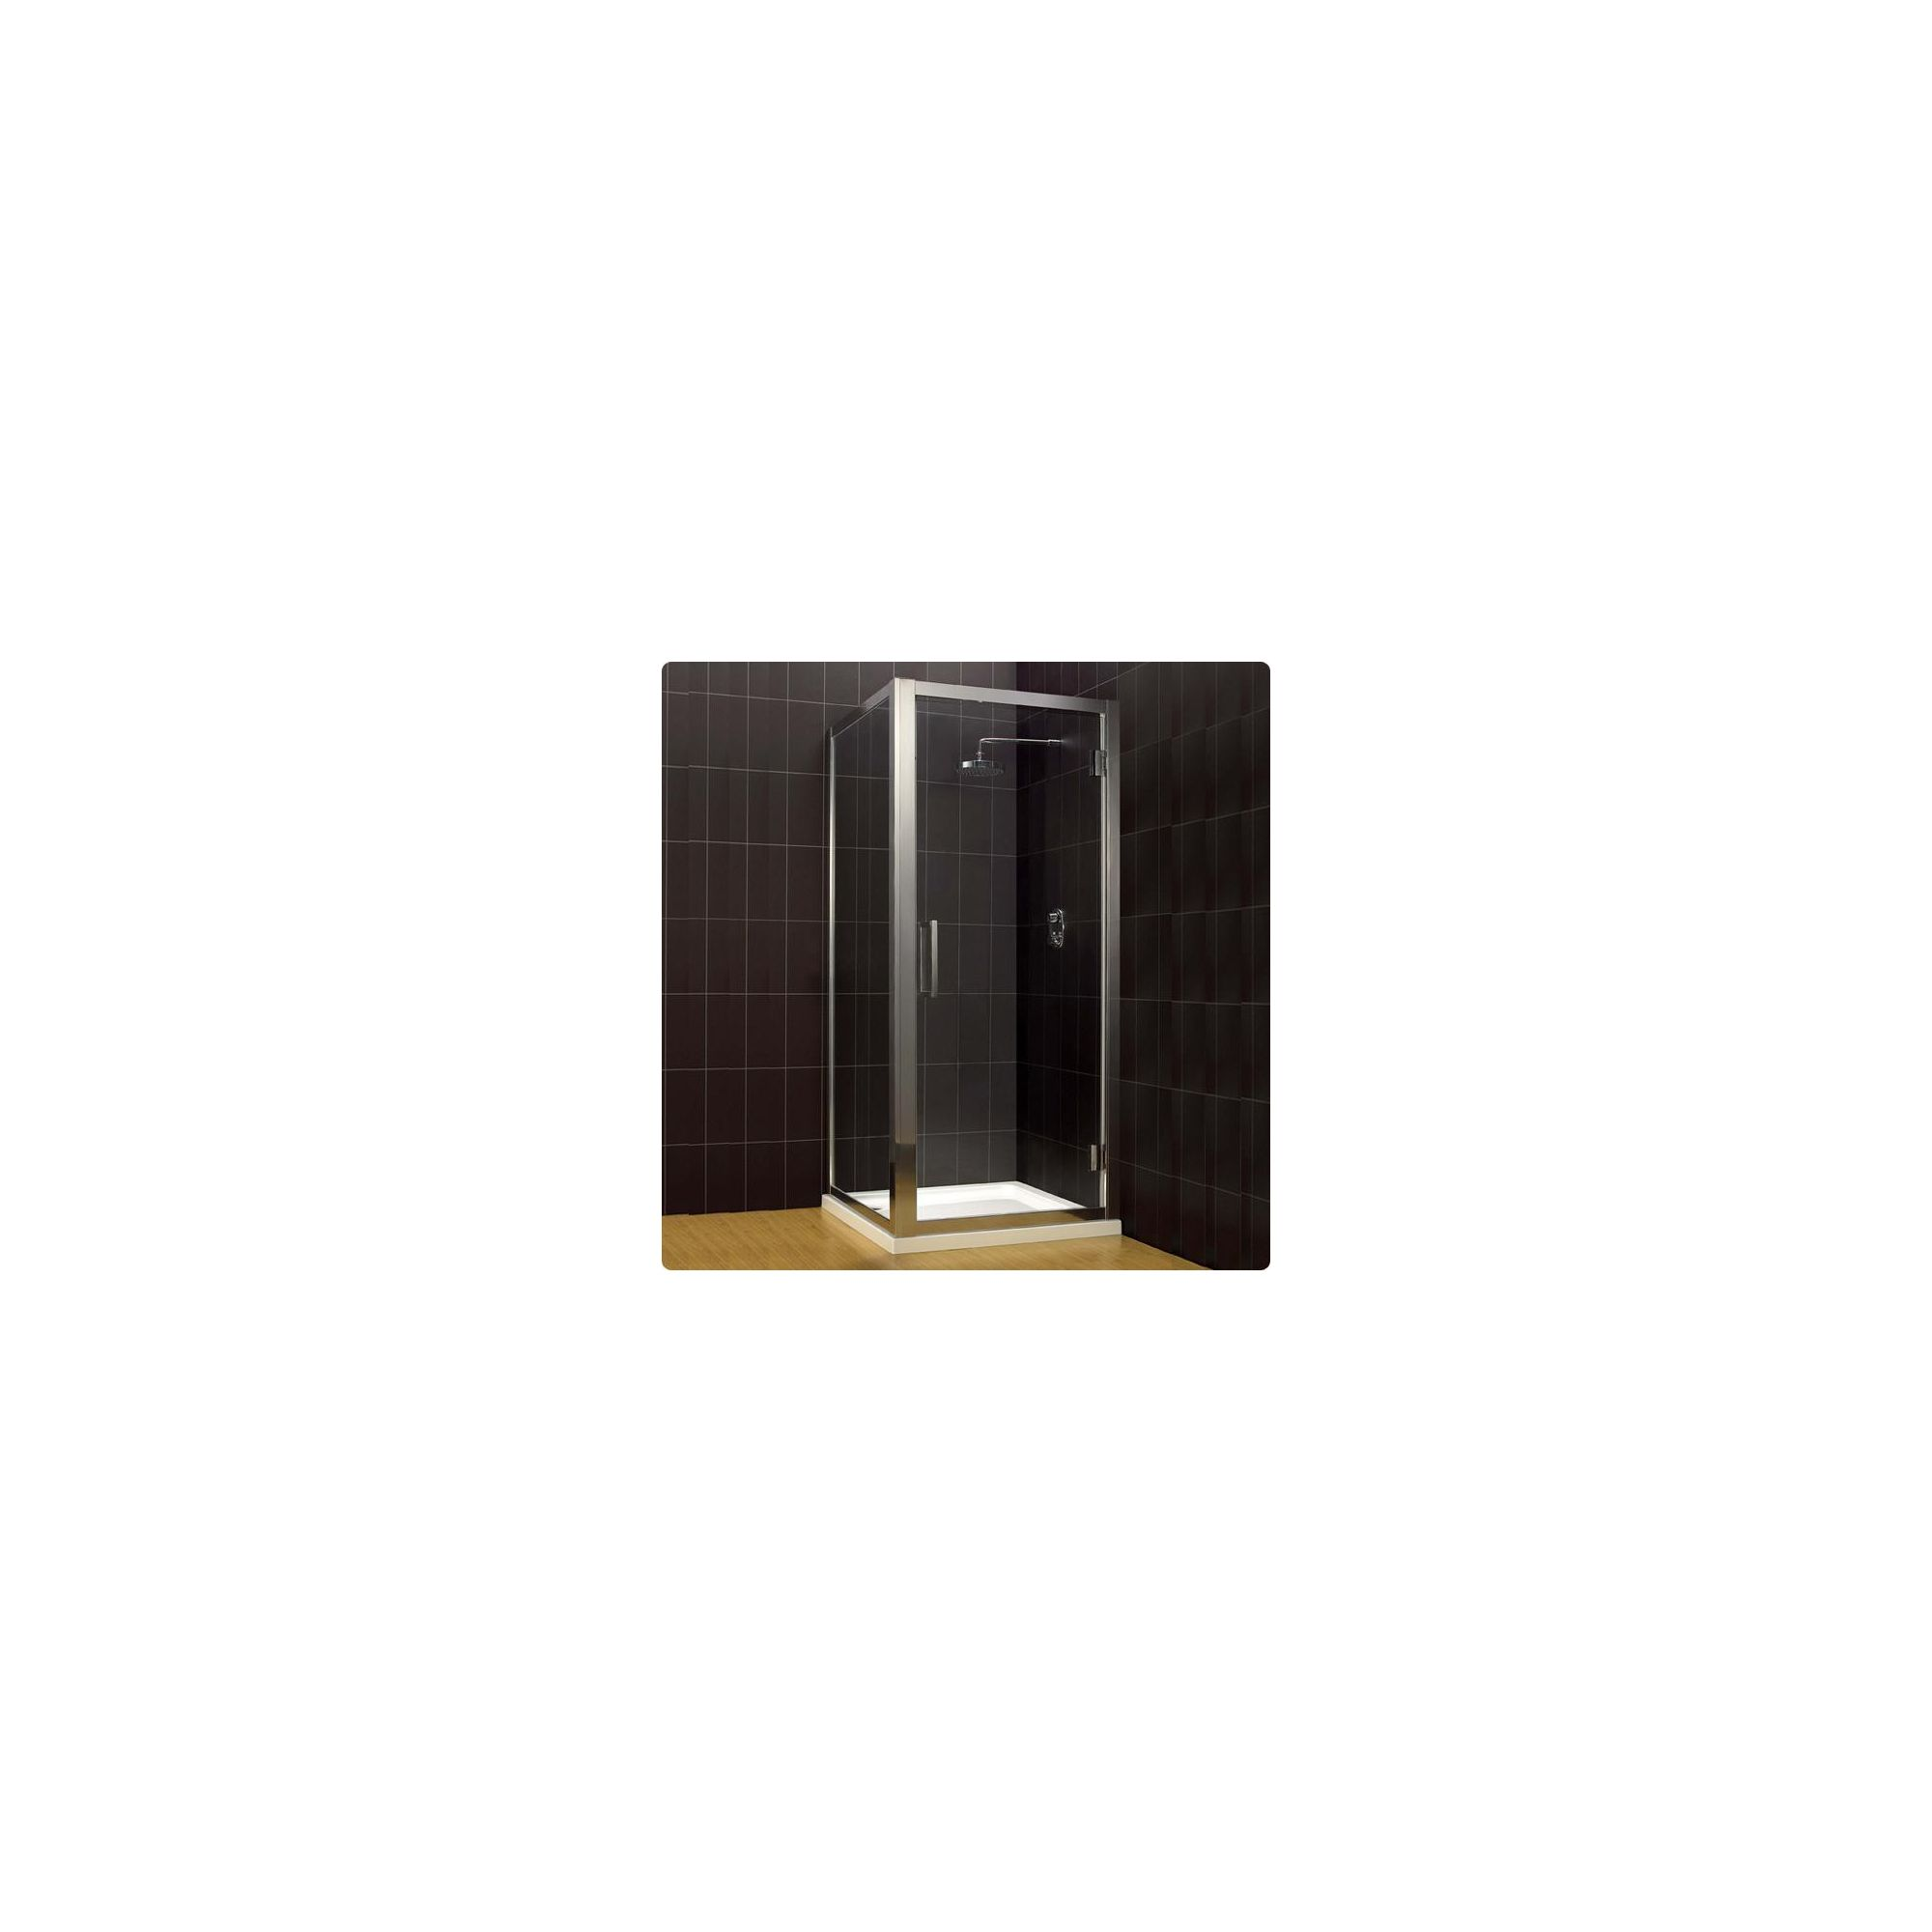 Duchy Supreme Silver Hinged Door Shower Enclosure, 800mm x 800mm, Standard Tray, 8mm Glass at Tesco Direct